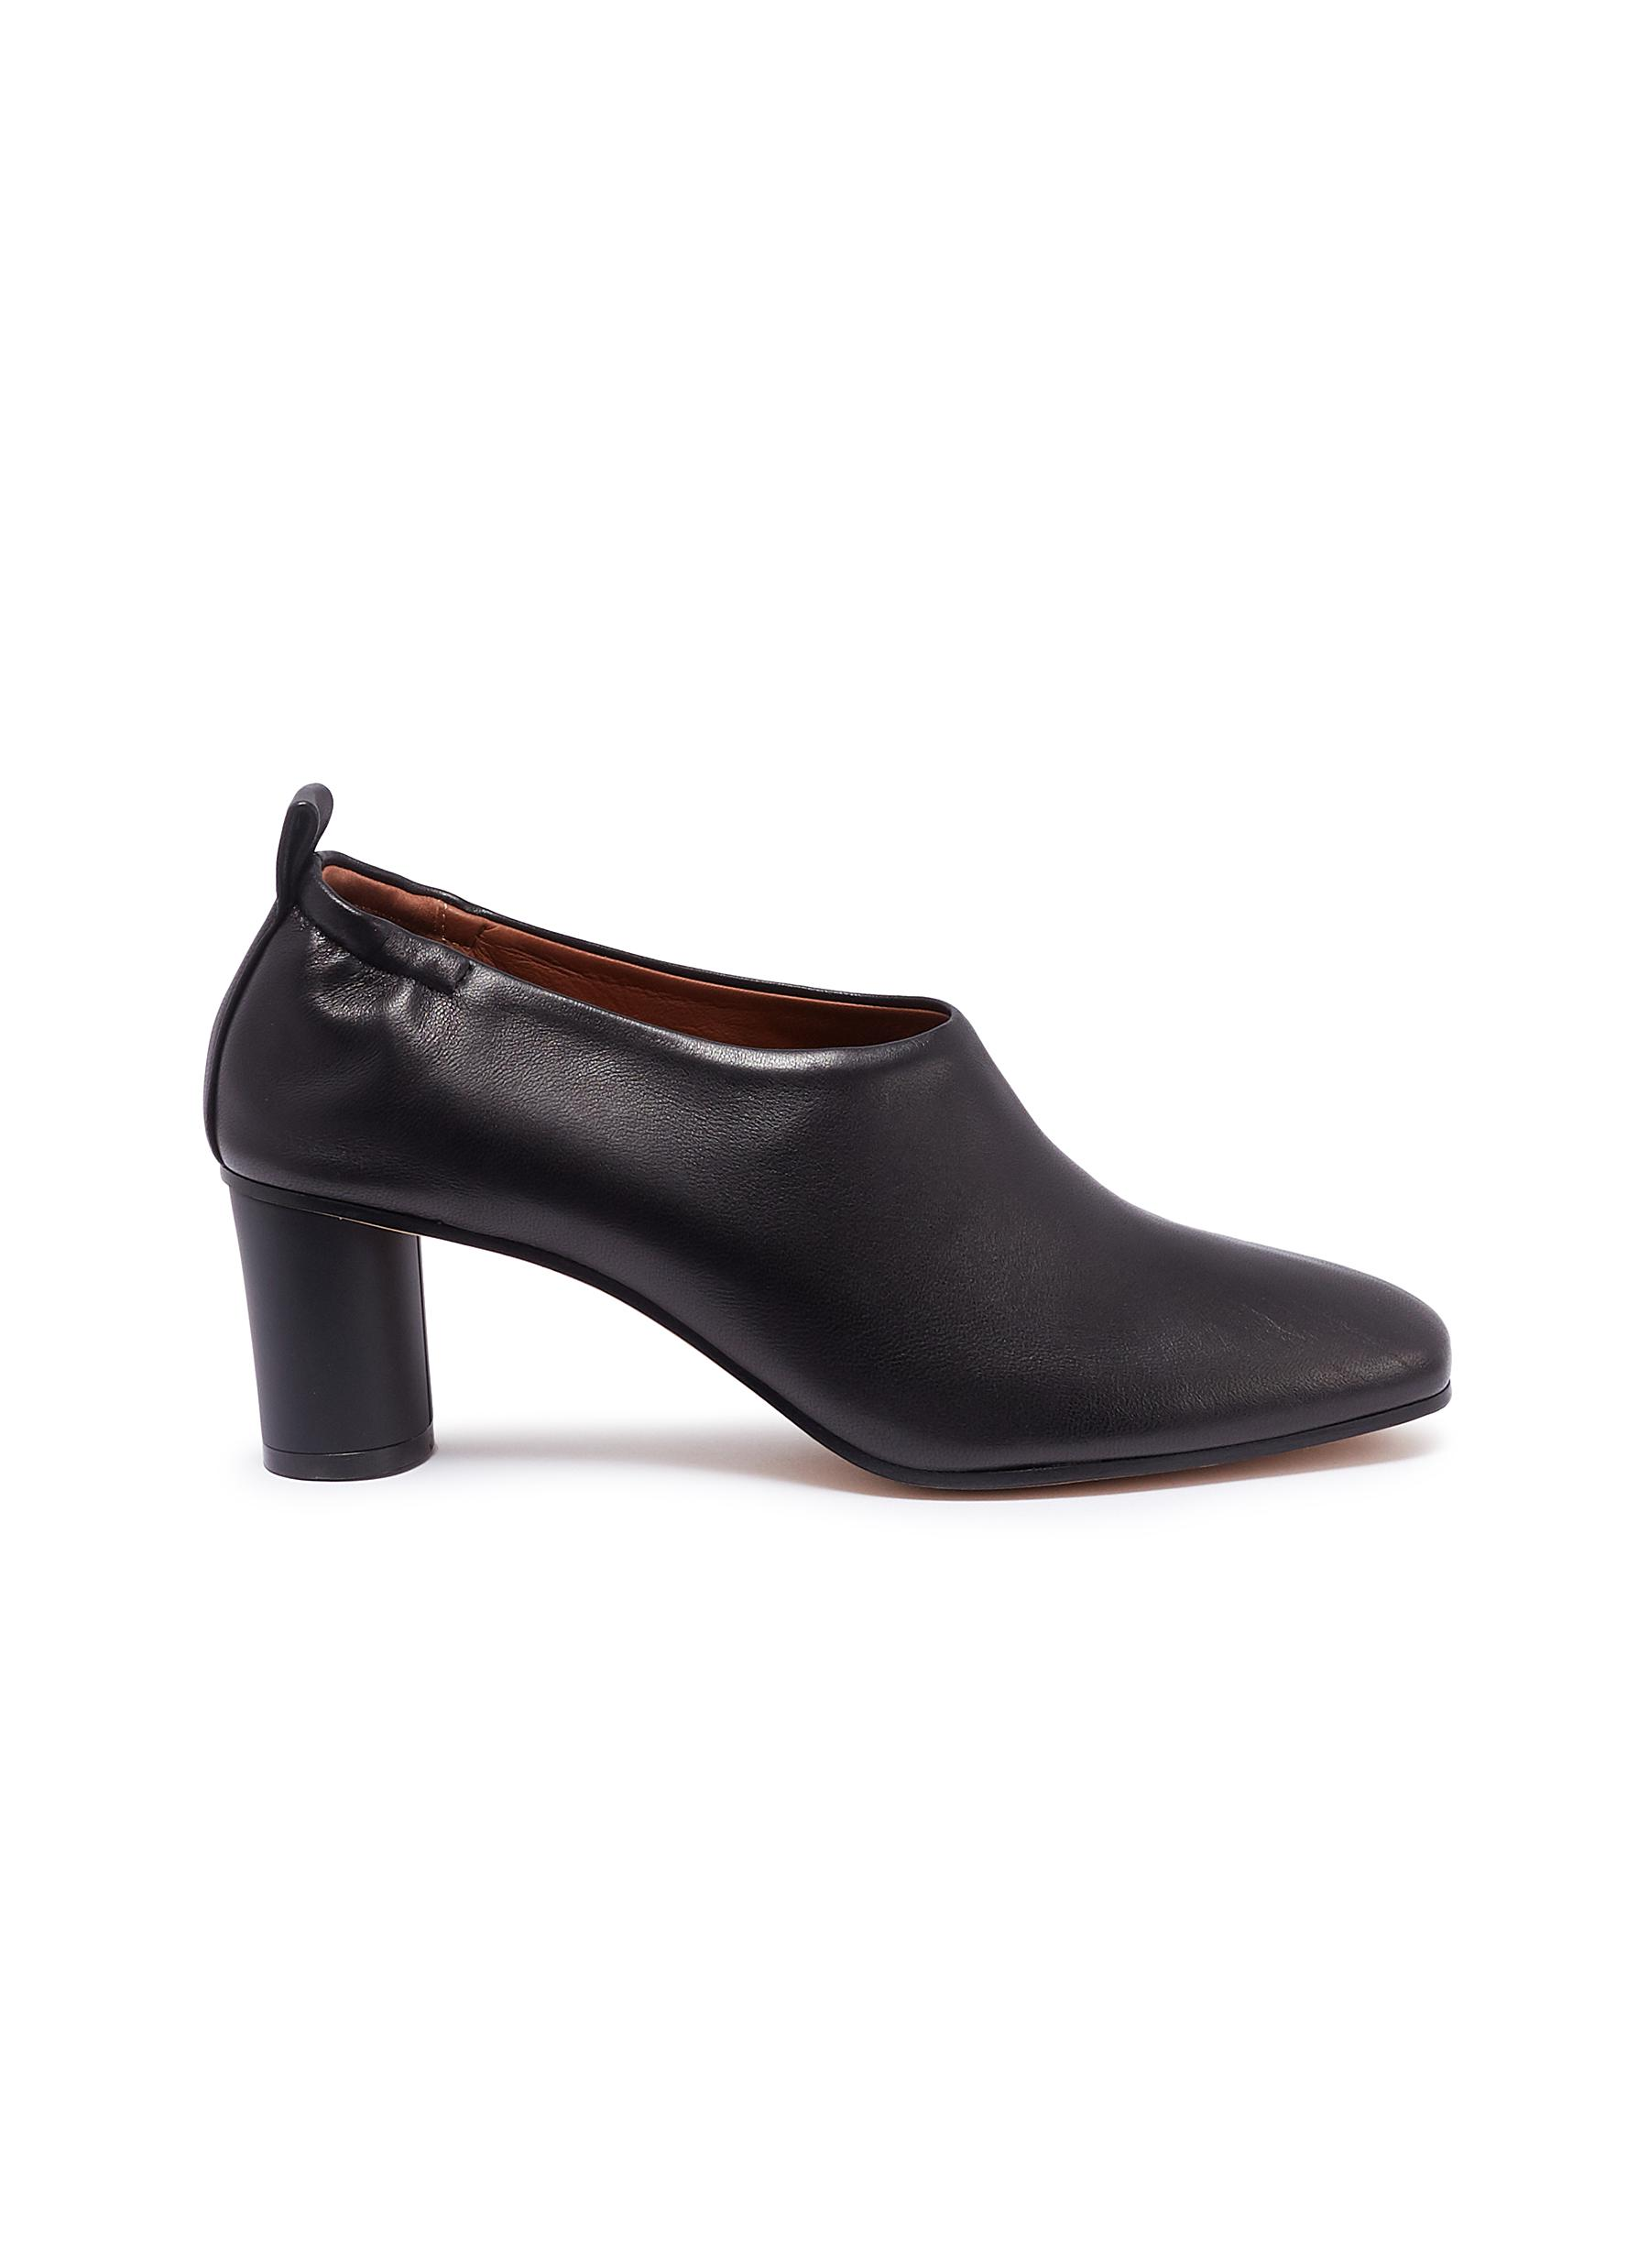 """Micol choked-up leather pumps by Gray Matters"